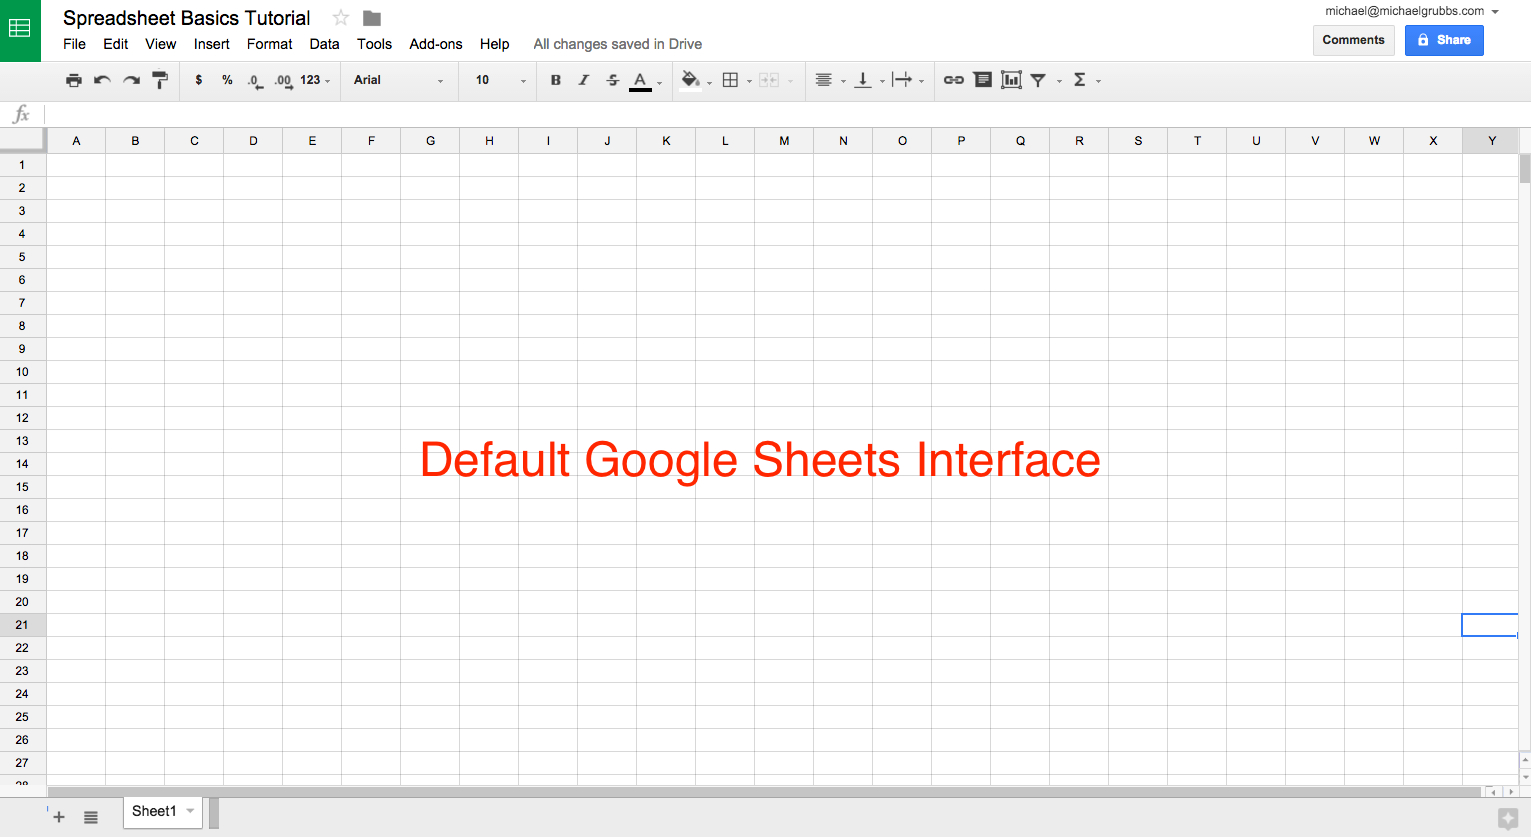 How To Use Spreadsheet Google In Google Sheets 101: The Beginner's Guide To Online Spreadsheets  The